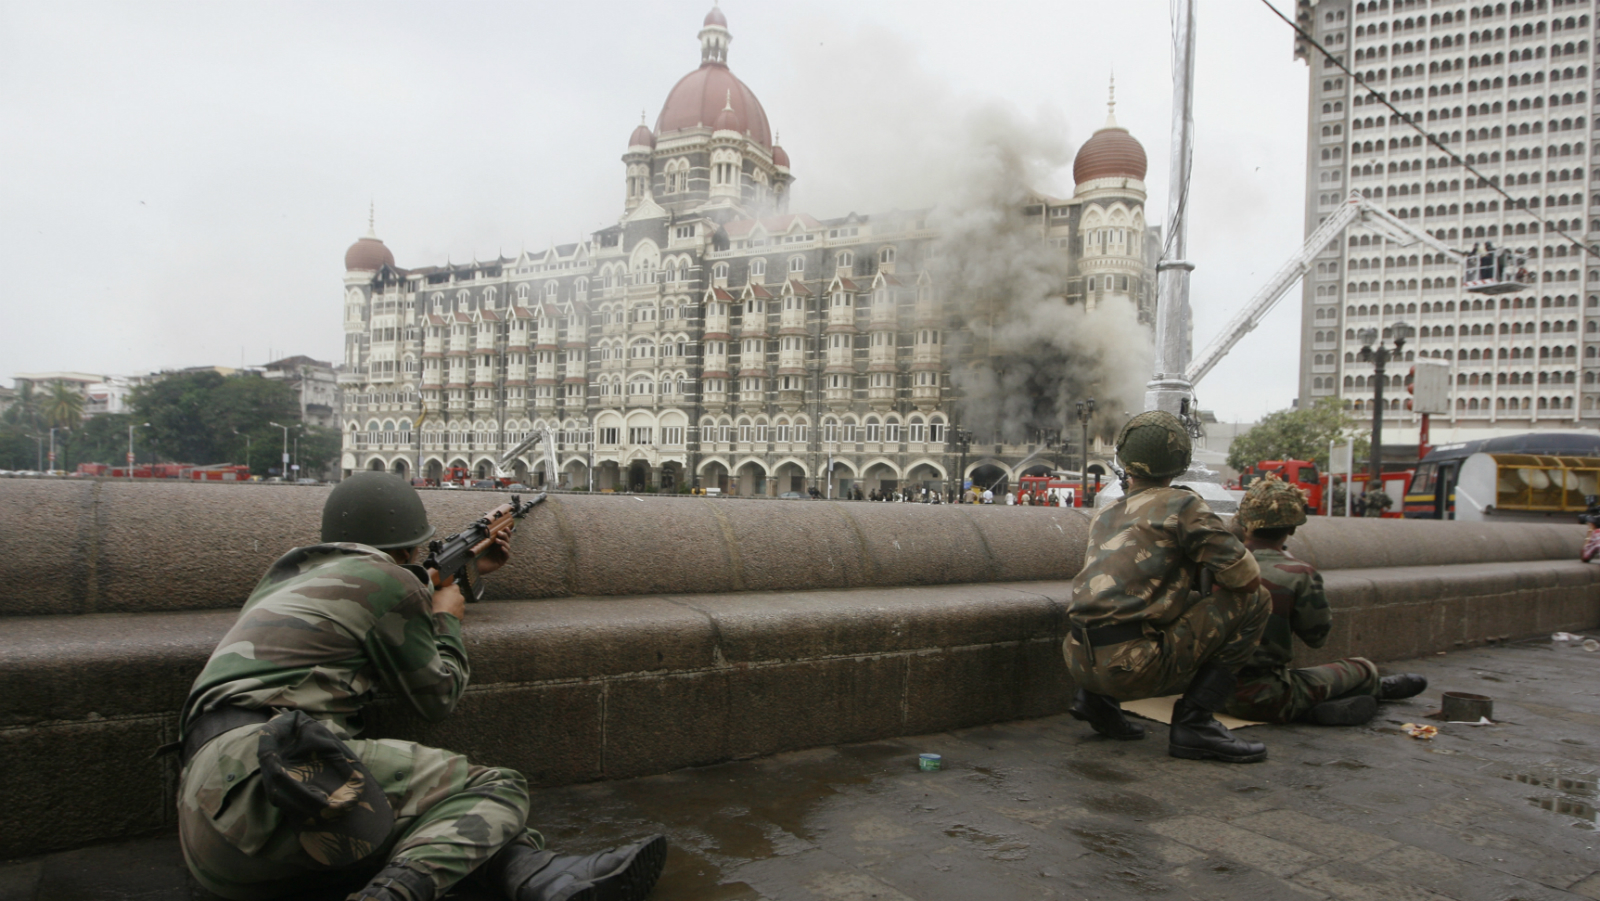 Indian army soldiers take position during a gun battle at the Taj Mahal hotel (seen in the background) in Mumbai November 29, 2008. Operations by Indian commandos to dislodge Islamist militants at Mumbai's Taj Mahal hotel ended on Saturday, Indian television channels quoted officials as saying. The hotel came under heavy gunfire and flames leaped out of the building shortly before the announcement. REUTERS/Desmond Boylan (INDIA)